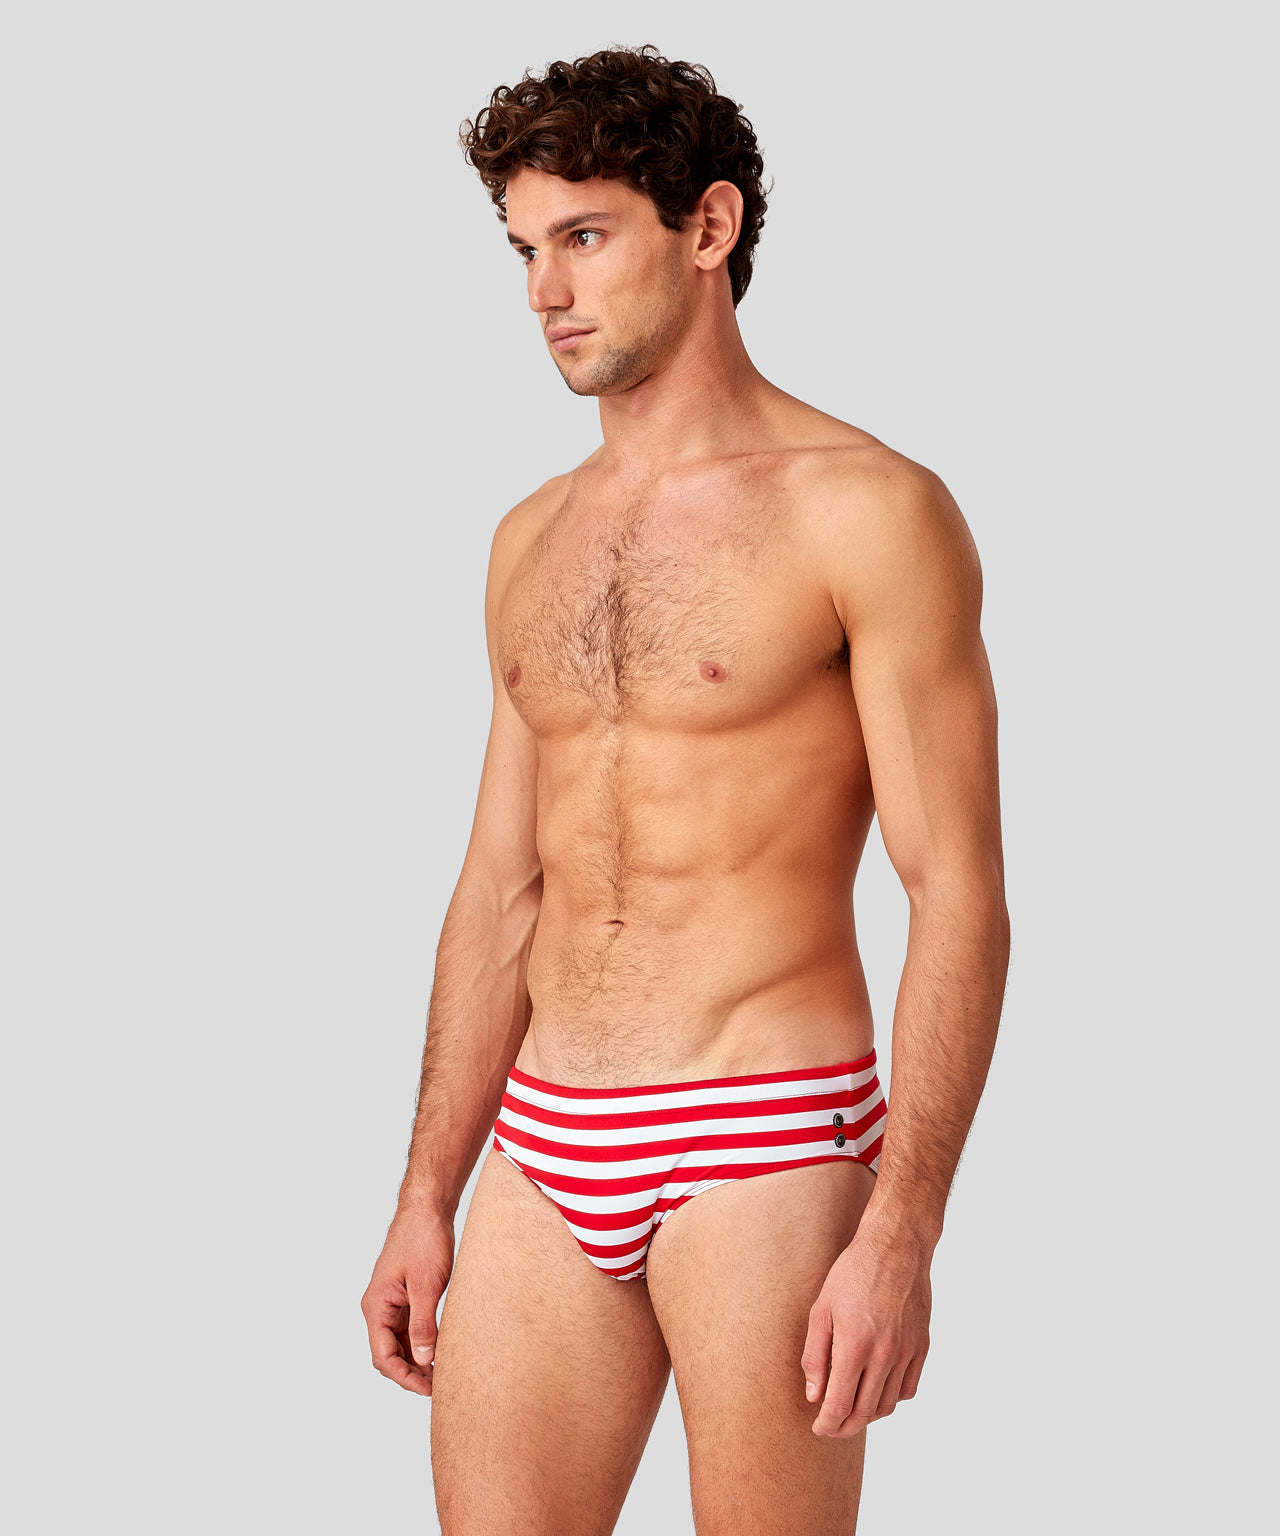 Swim Trunks Horizontal Stripes - red/white